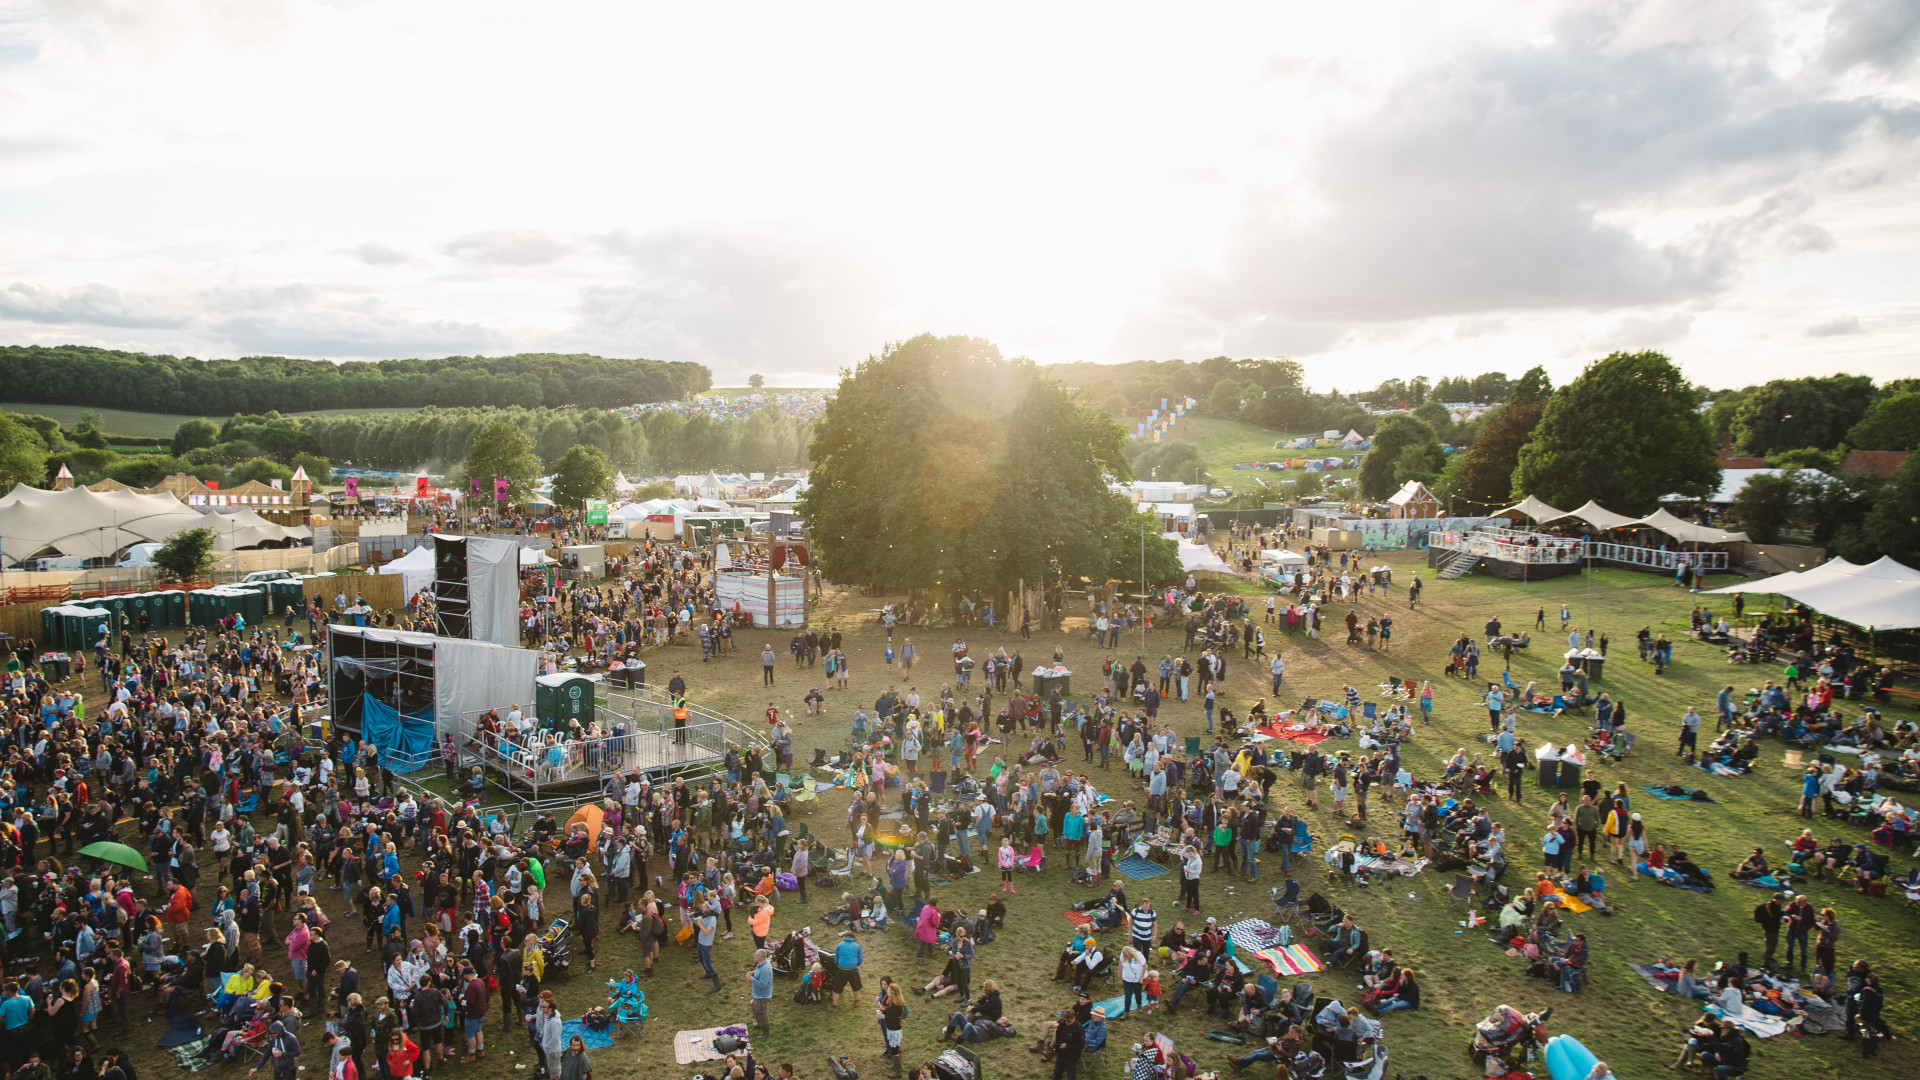 The Standon Calling festival site